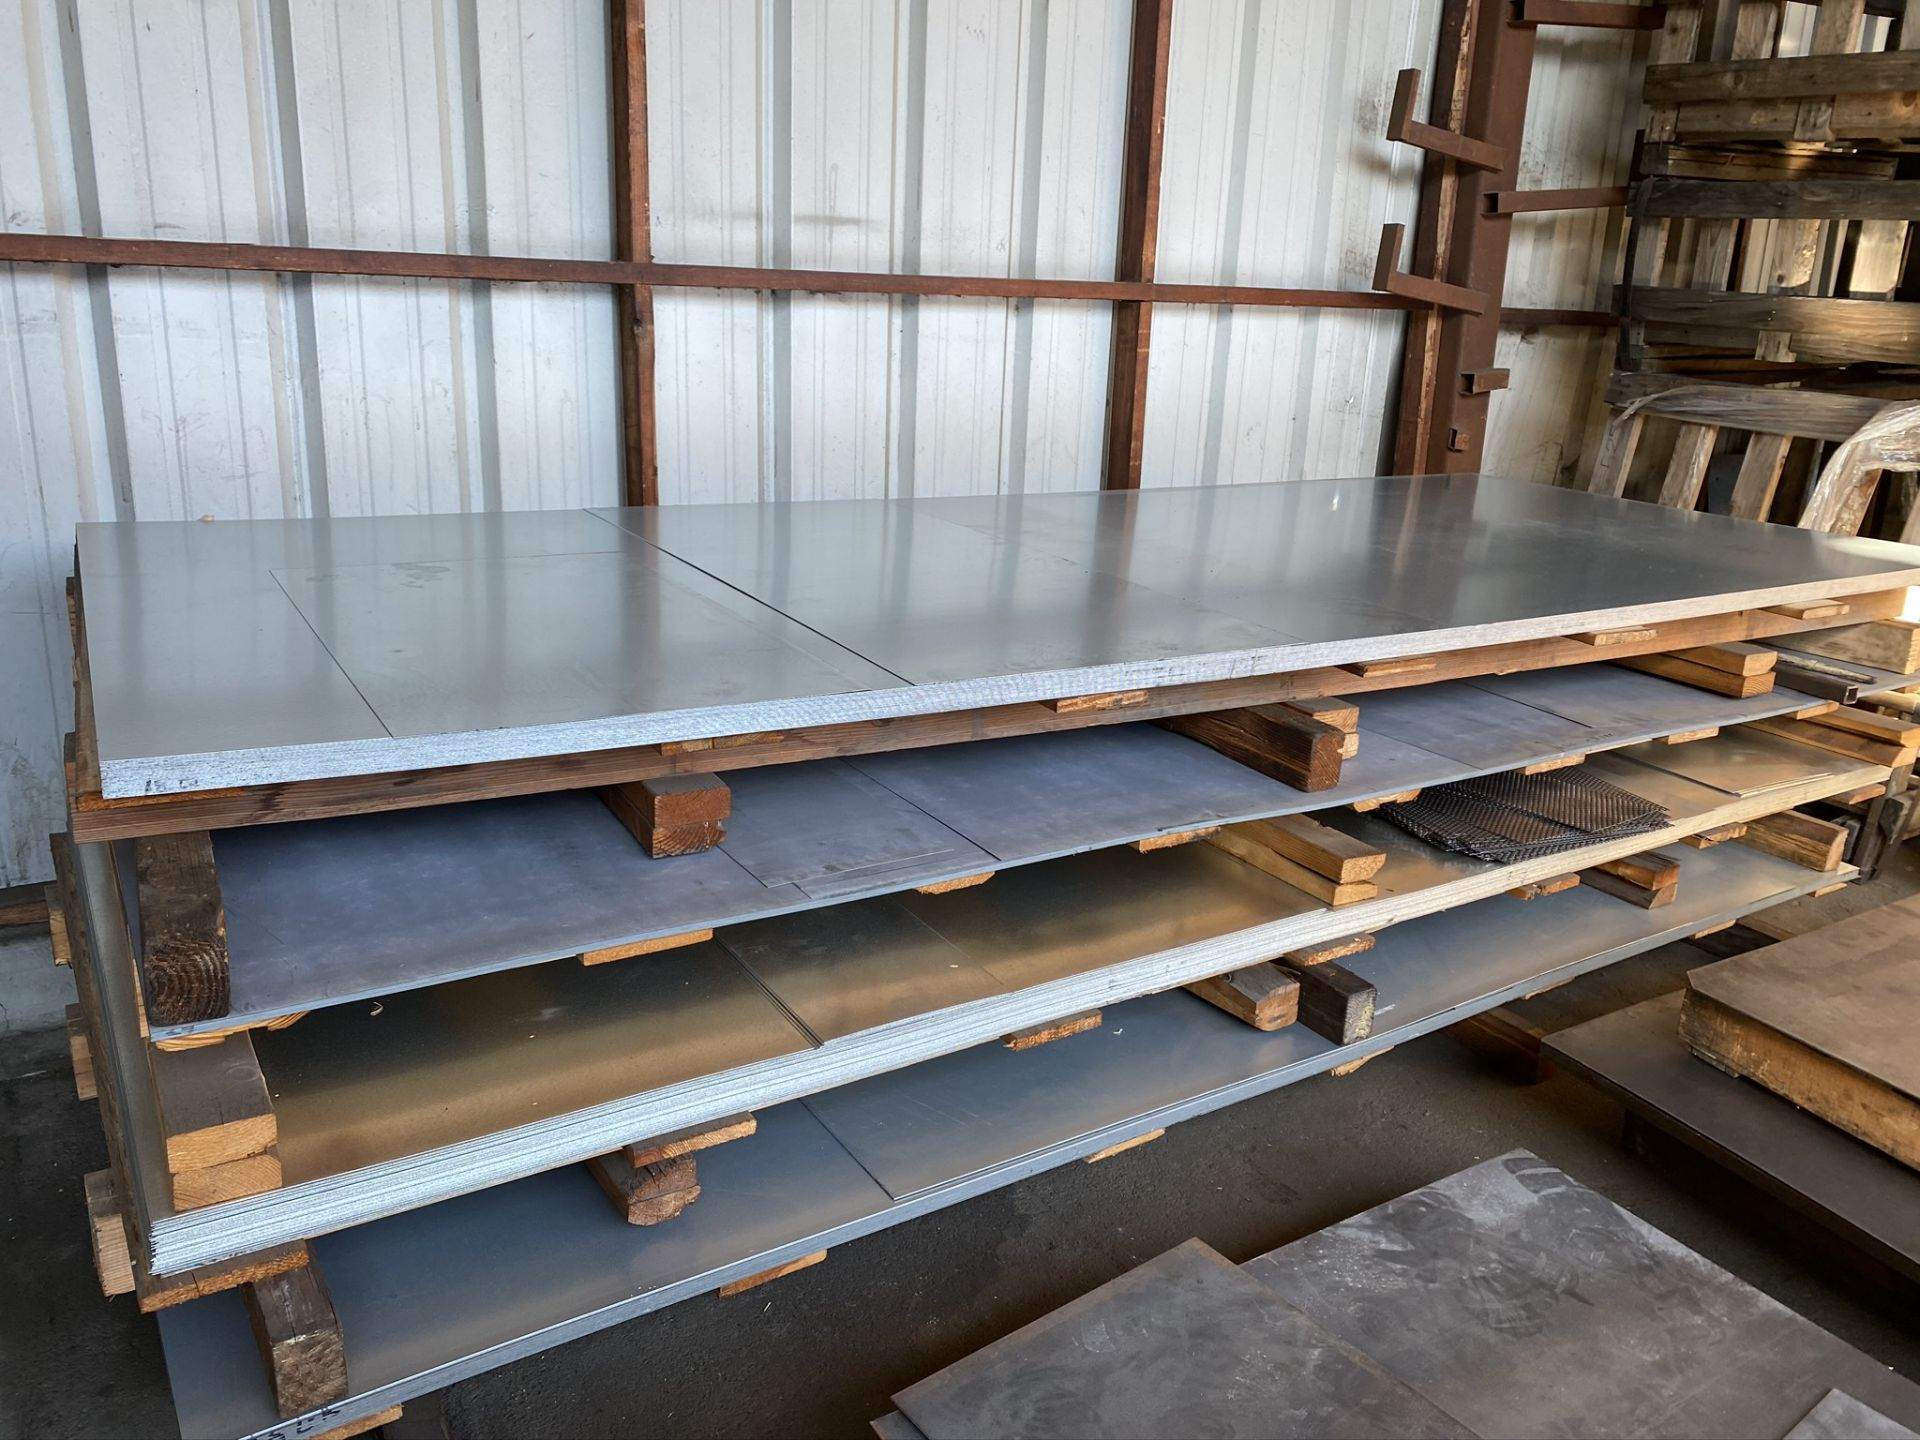 Lot 0A - STORE FIXTURE MANUFACTURING FACILITY